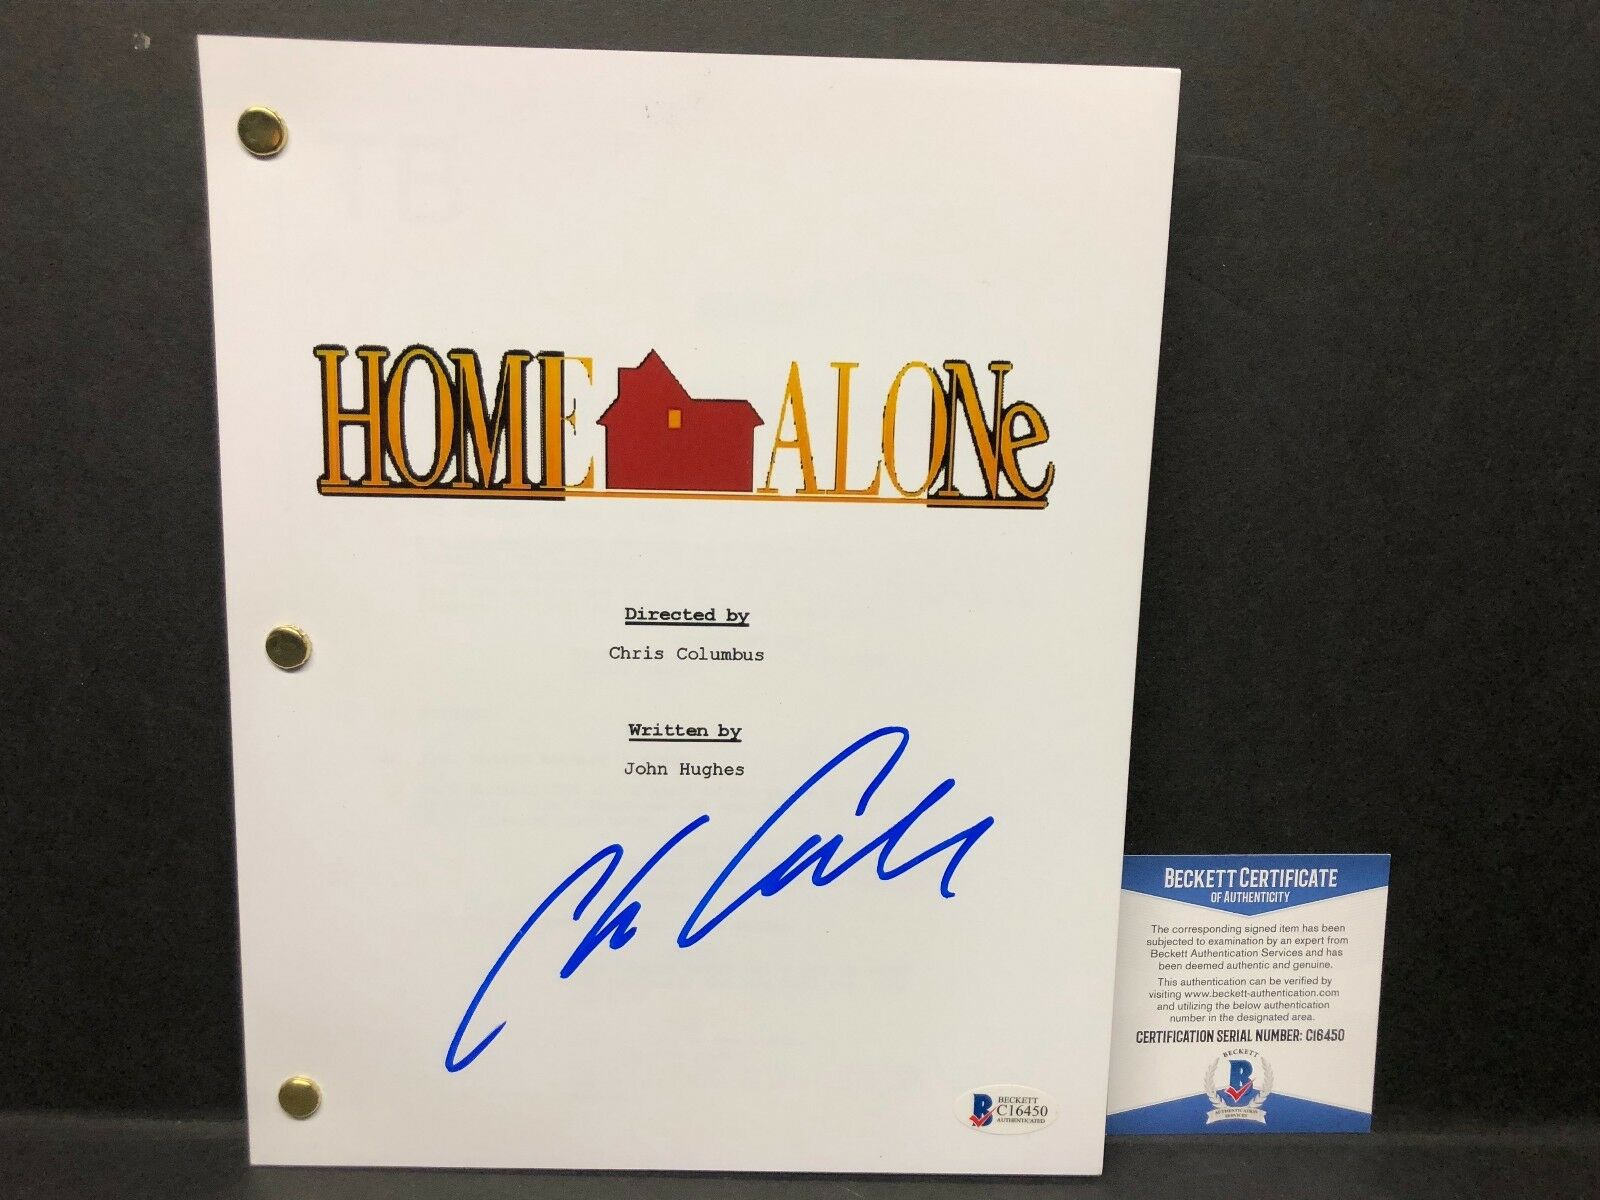 Chris Columbus Signed 'Home Alone' Full Movie Script BAS C16450